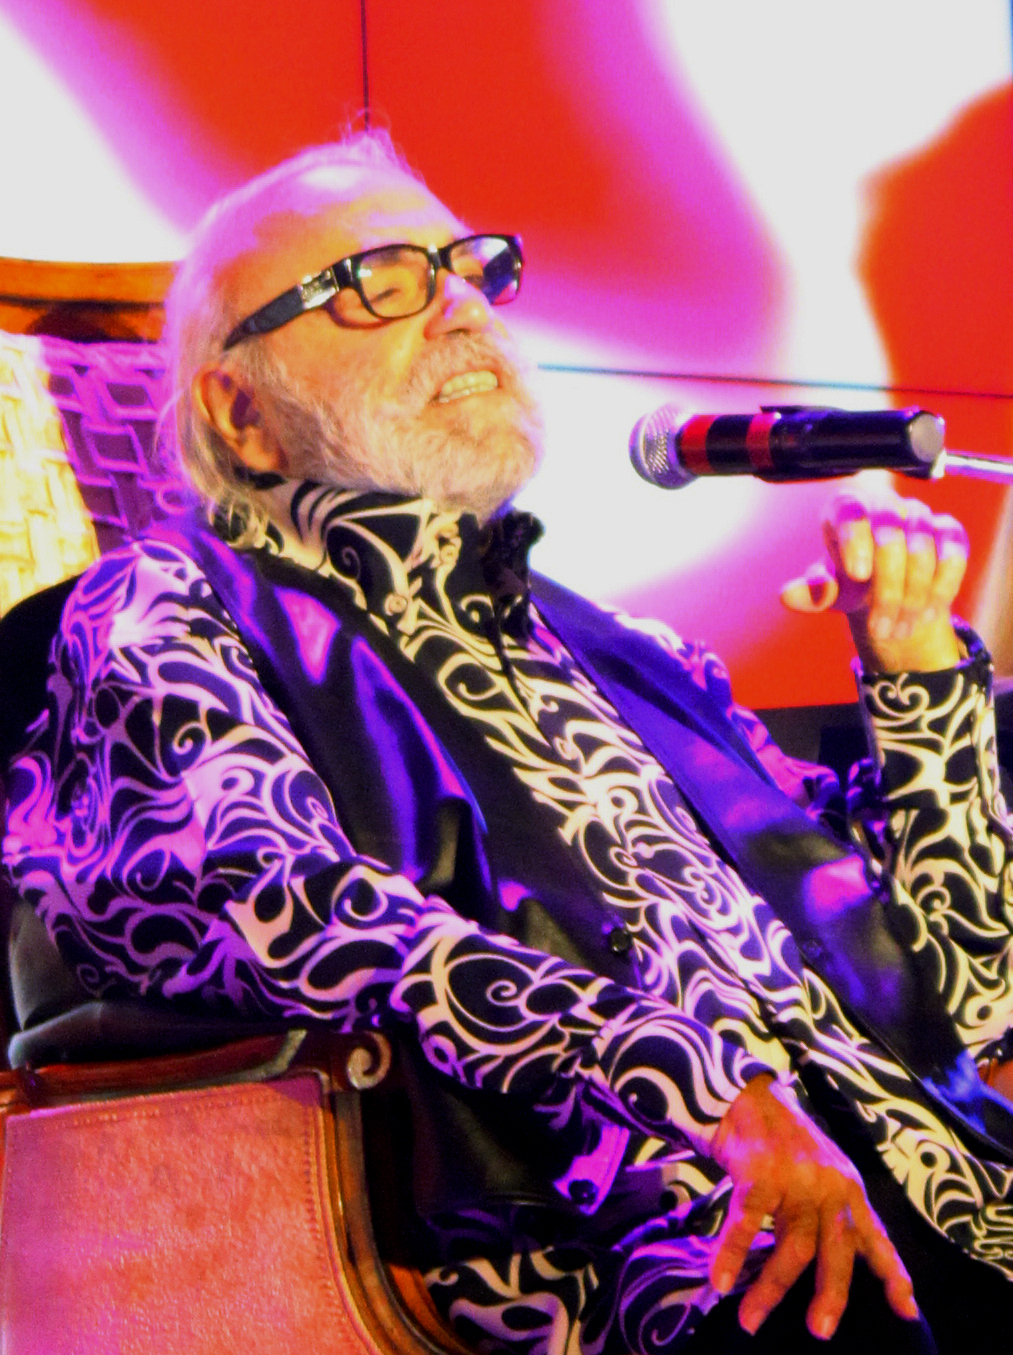 https://upload.wikimedia.org/wikipedia/commons/3/32/Demis_Roussos_in_Baku_2-cropped.jpg